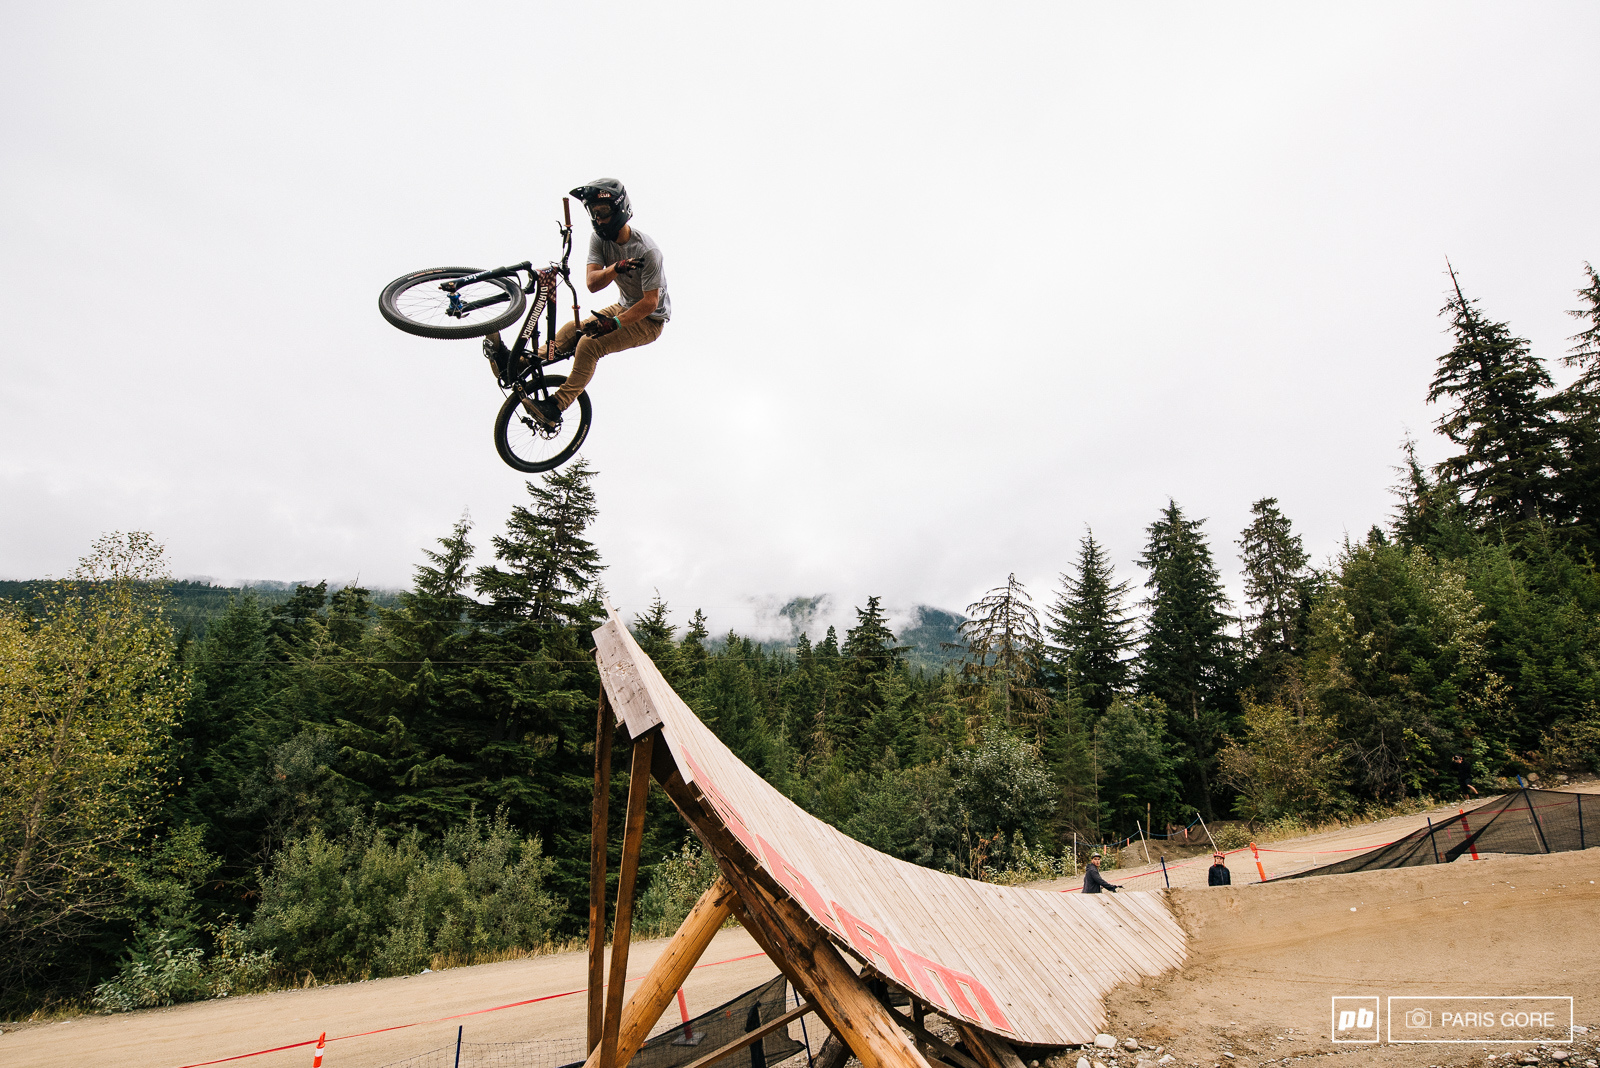 Carson Storch bar spin off the wall ride that eventually took him out later in practice.